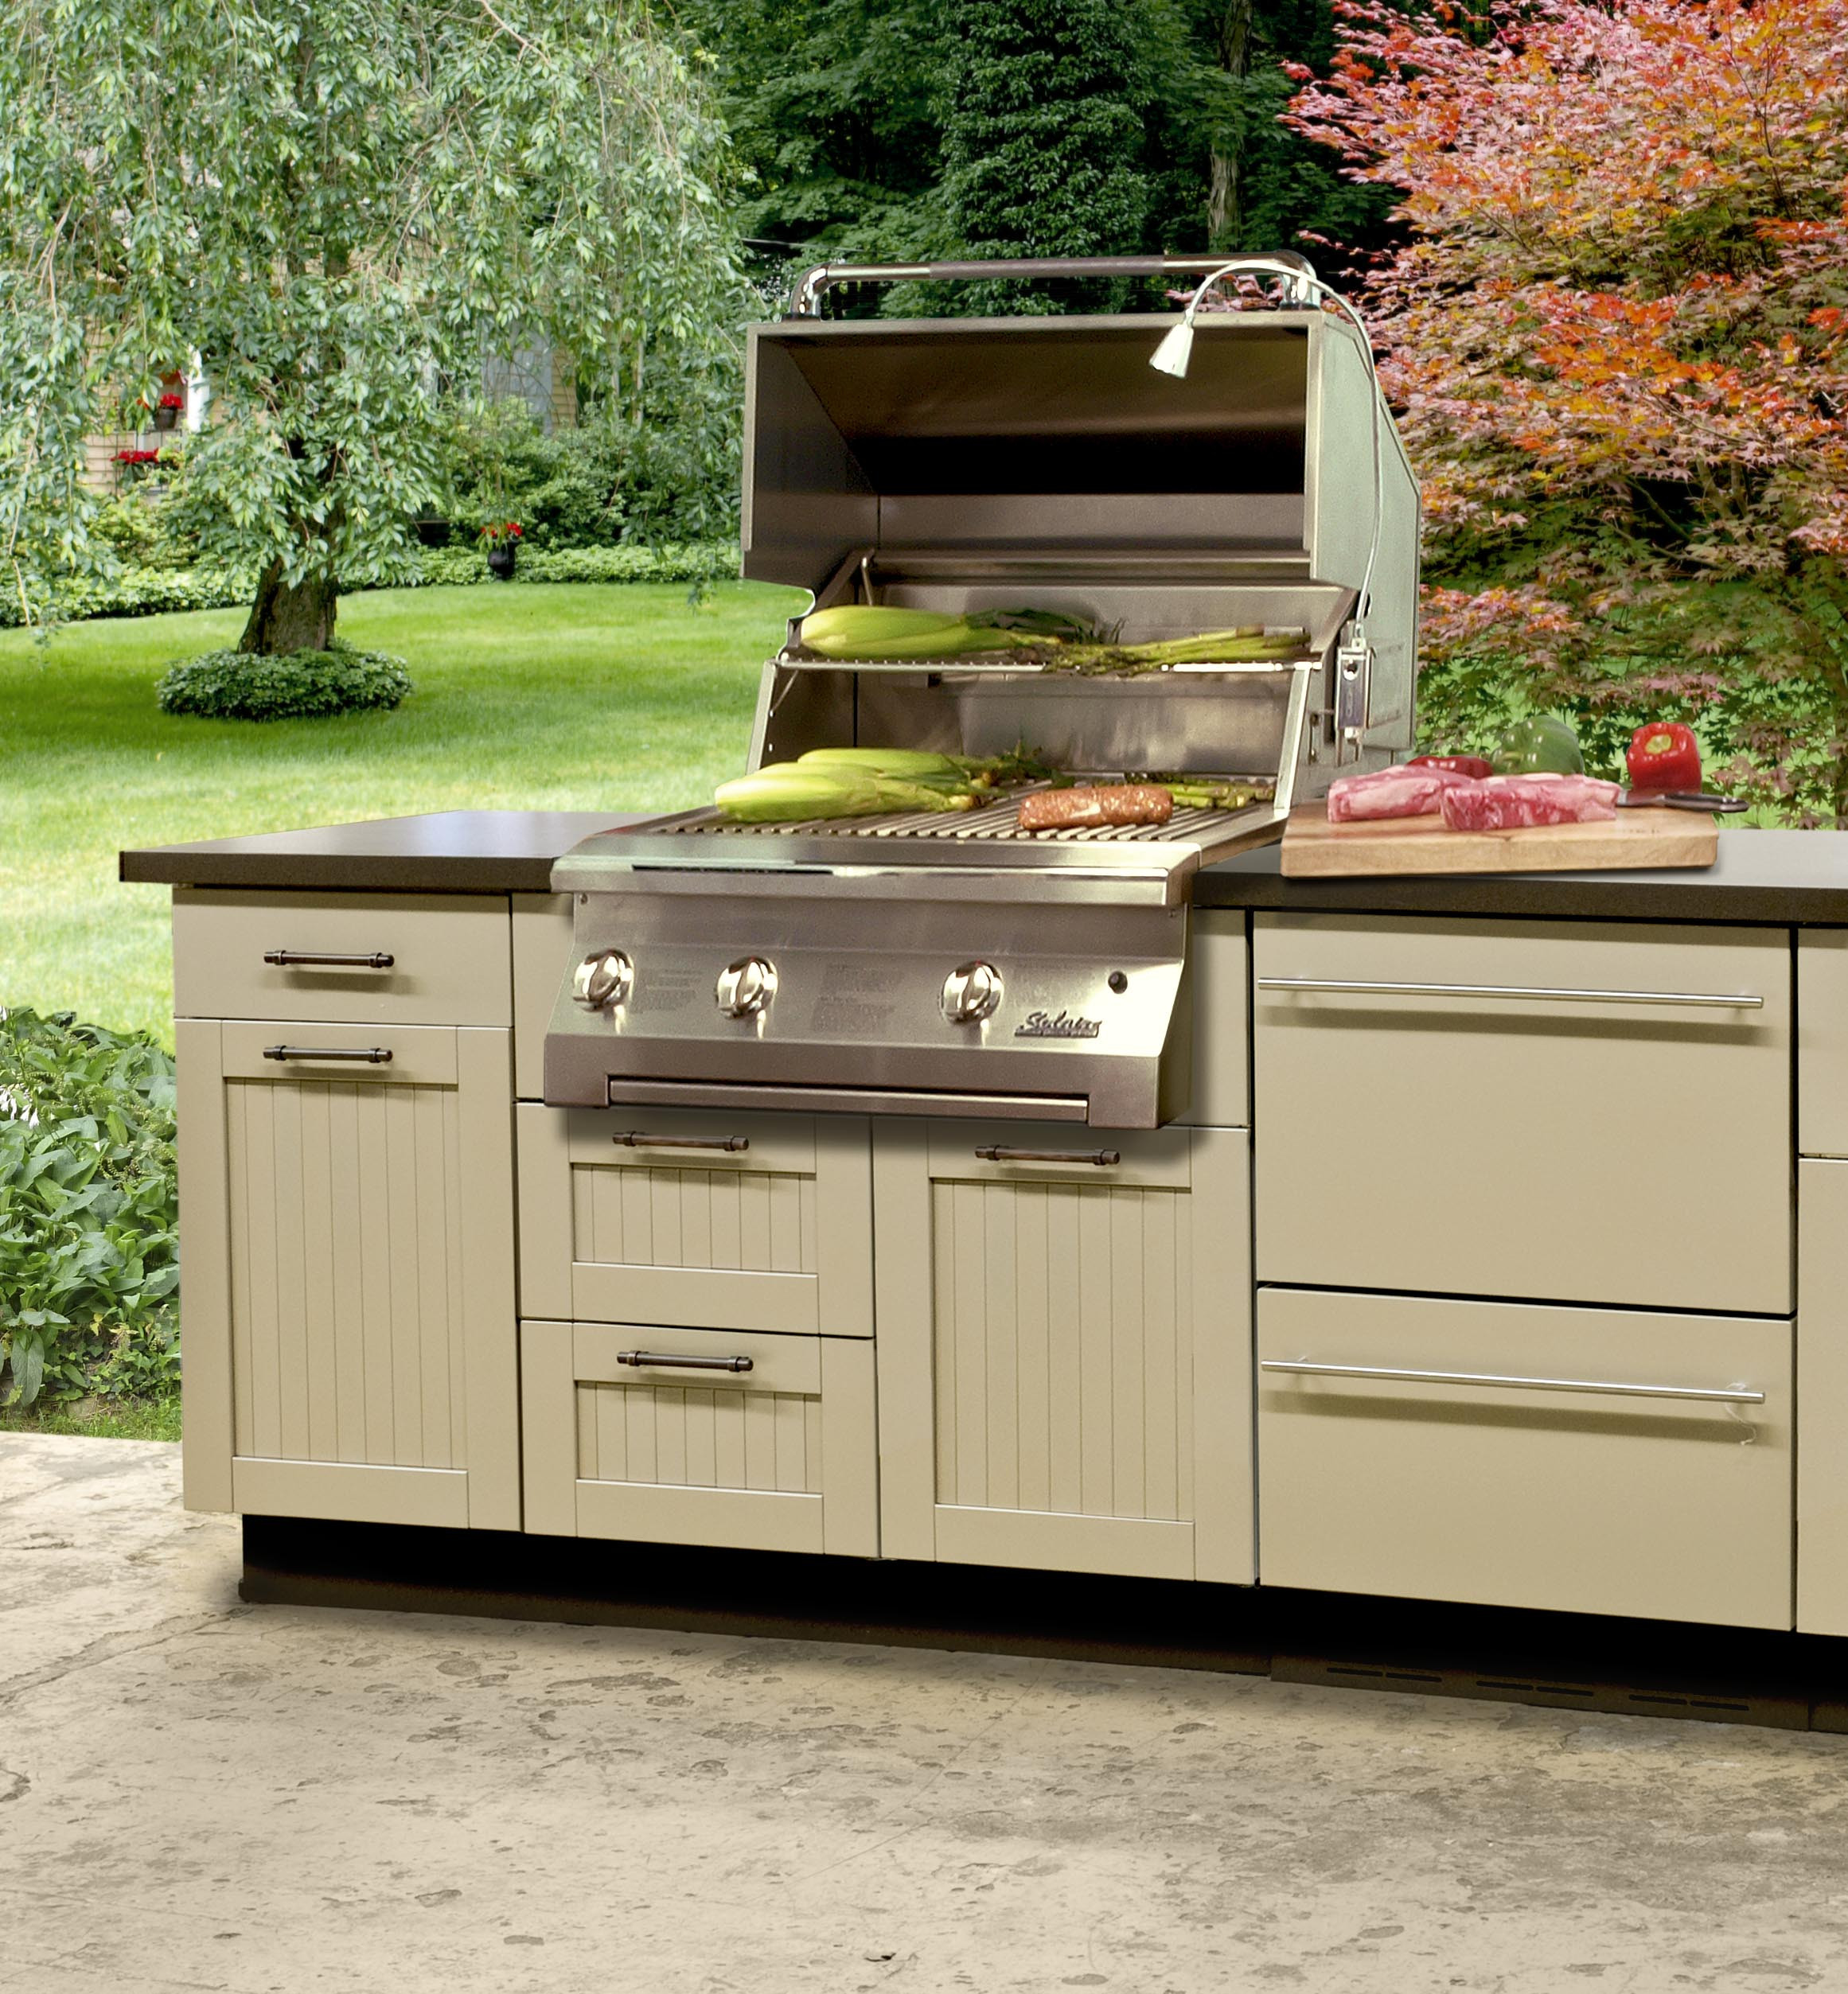 Stainless Outdoor Kitchen  Danver Stainless Steel Cabinetry